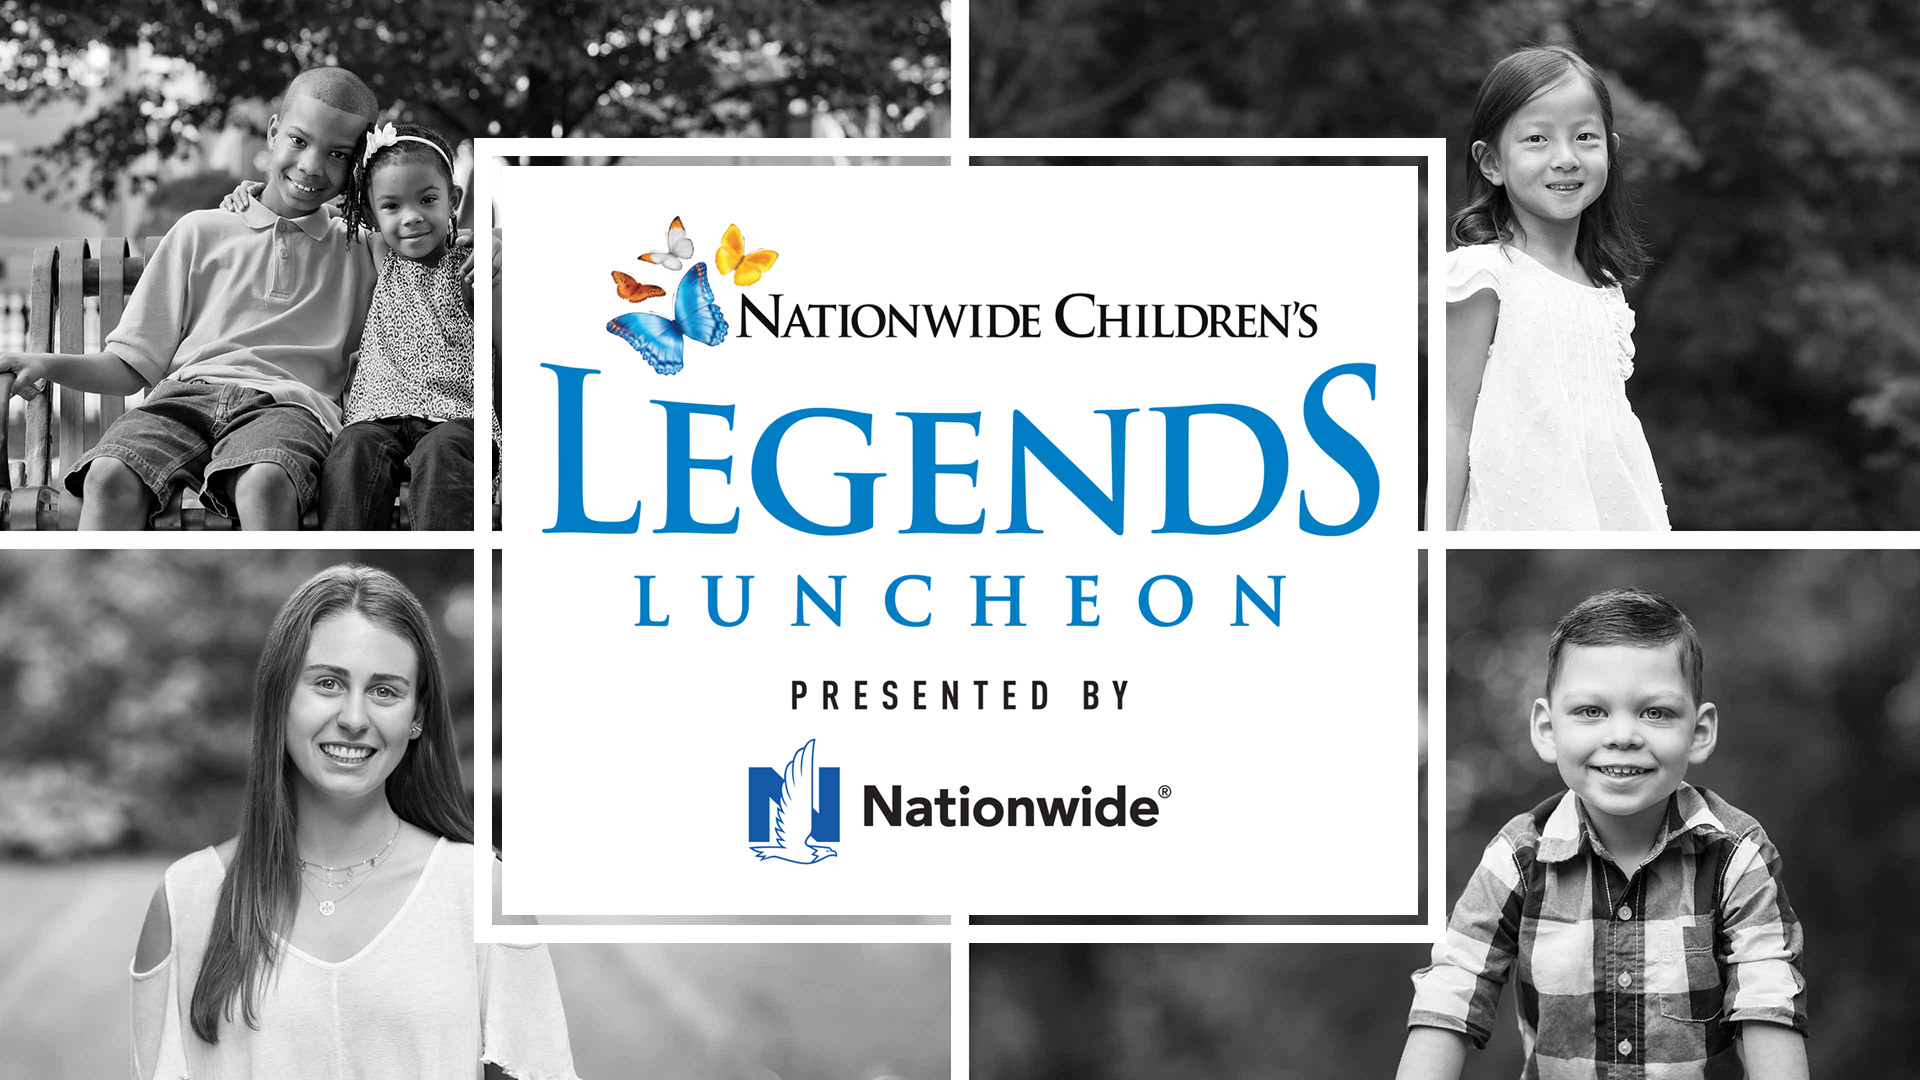 Switching Gears for Legends Luncheon